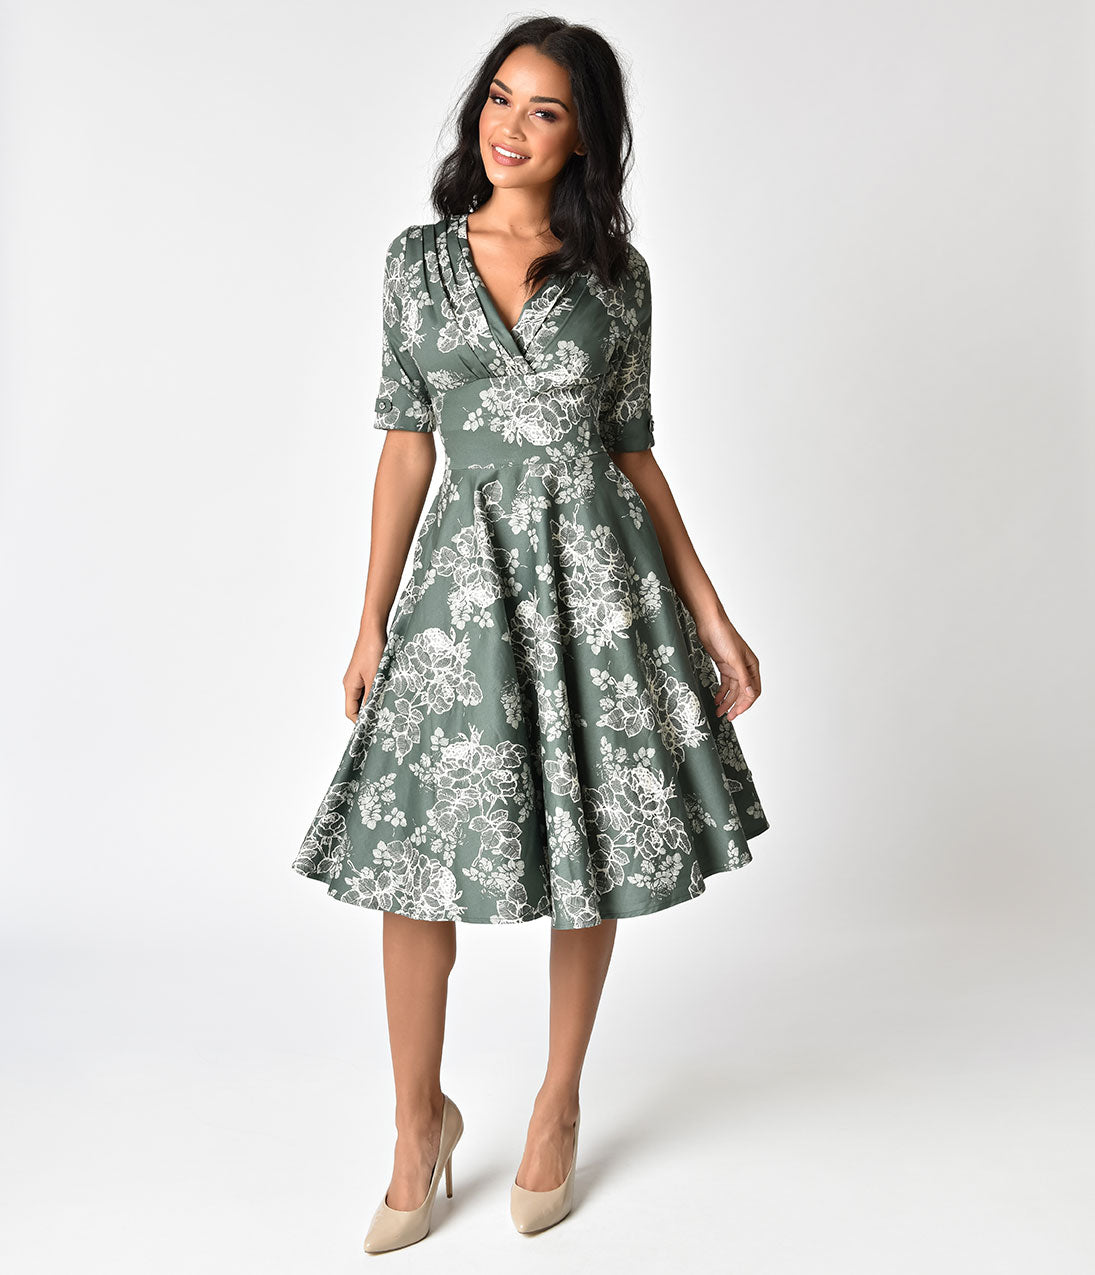 1950s Housewife Dress | 50s Day Dresses Unique Vintage 1950S Sage Green Floral Delores Swing Dress With Sleeves $98.00 AT vintagedancer.com